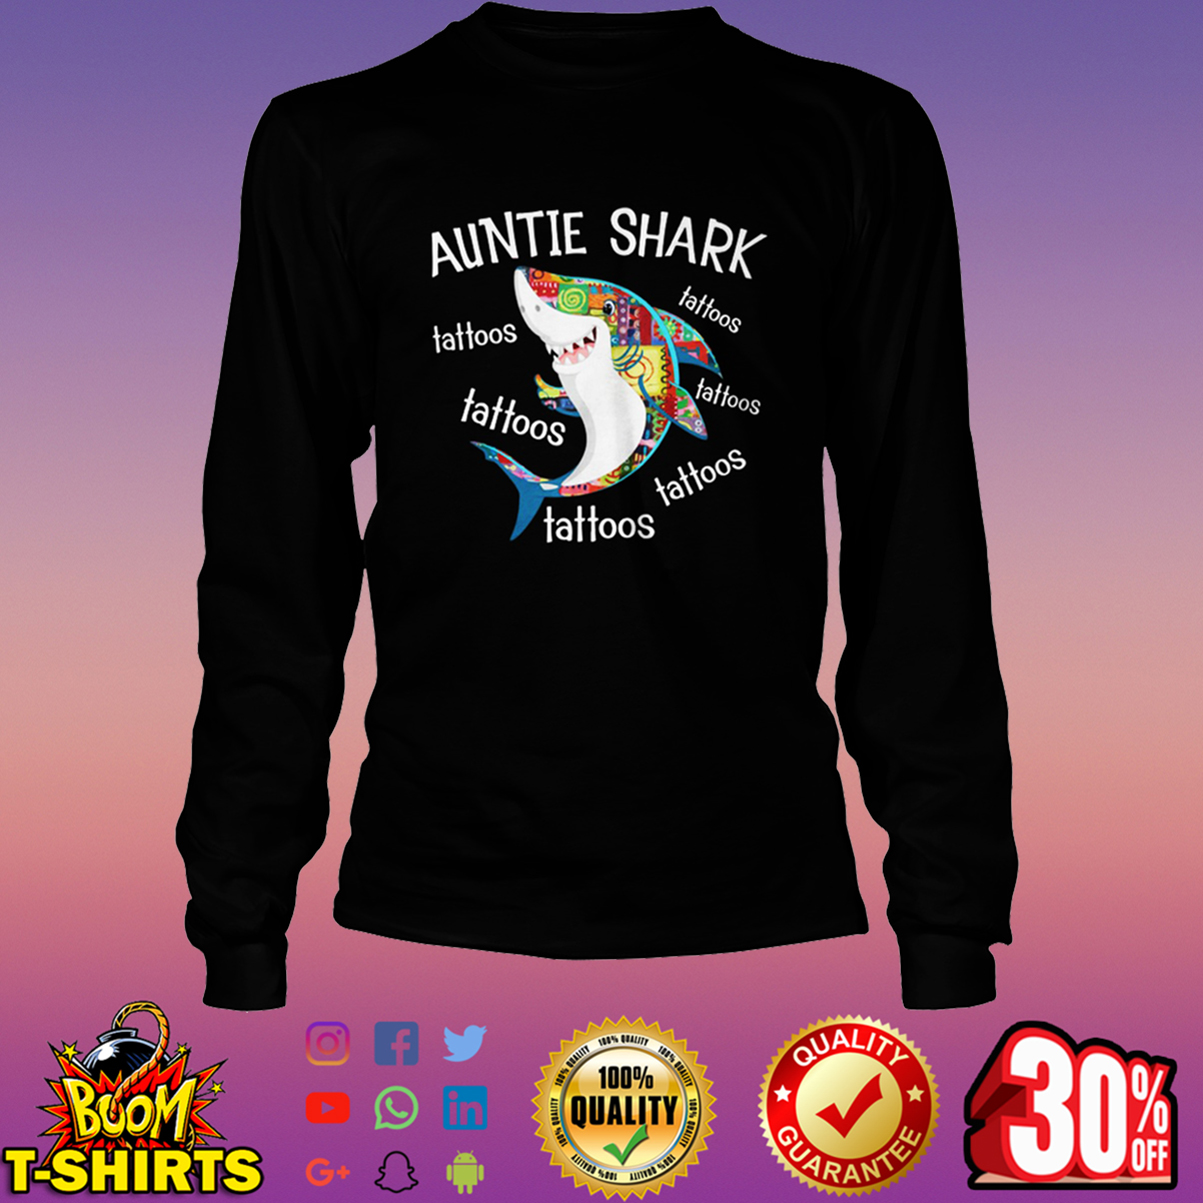 Auntie Shark tattoos tattoos long sleeve tee